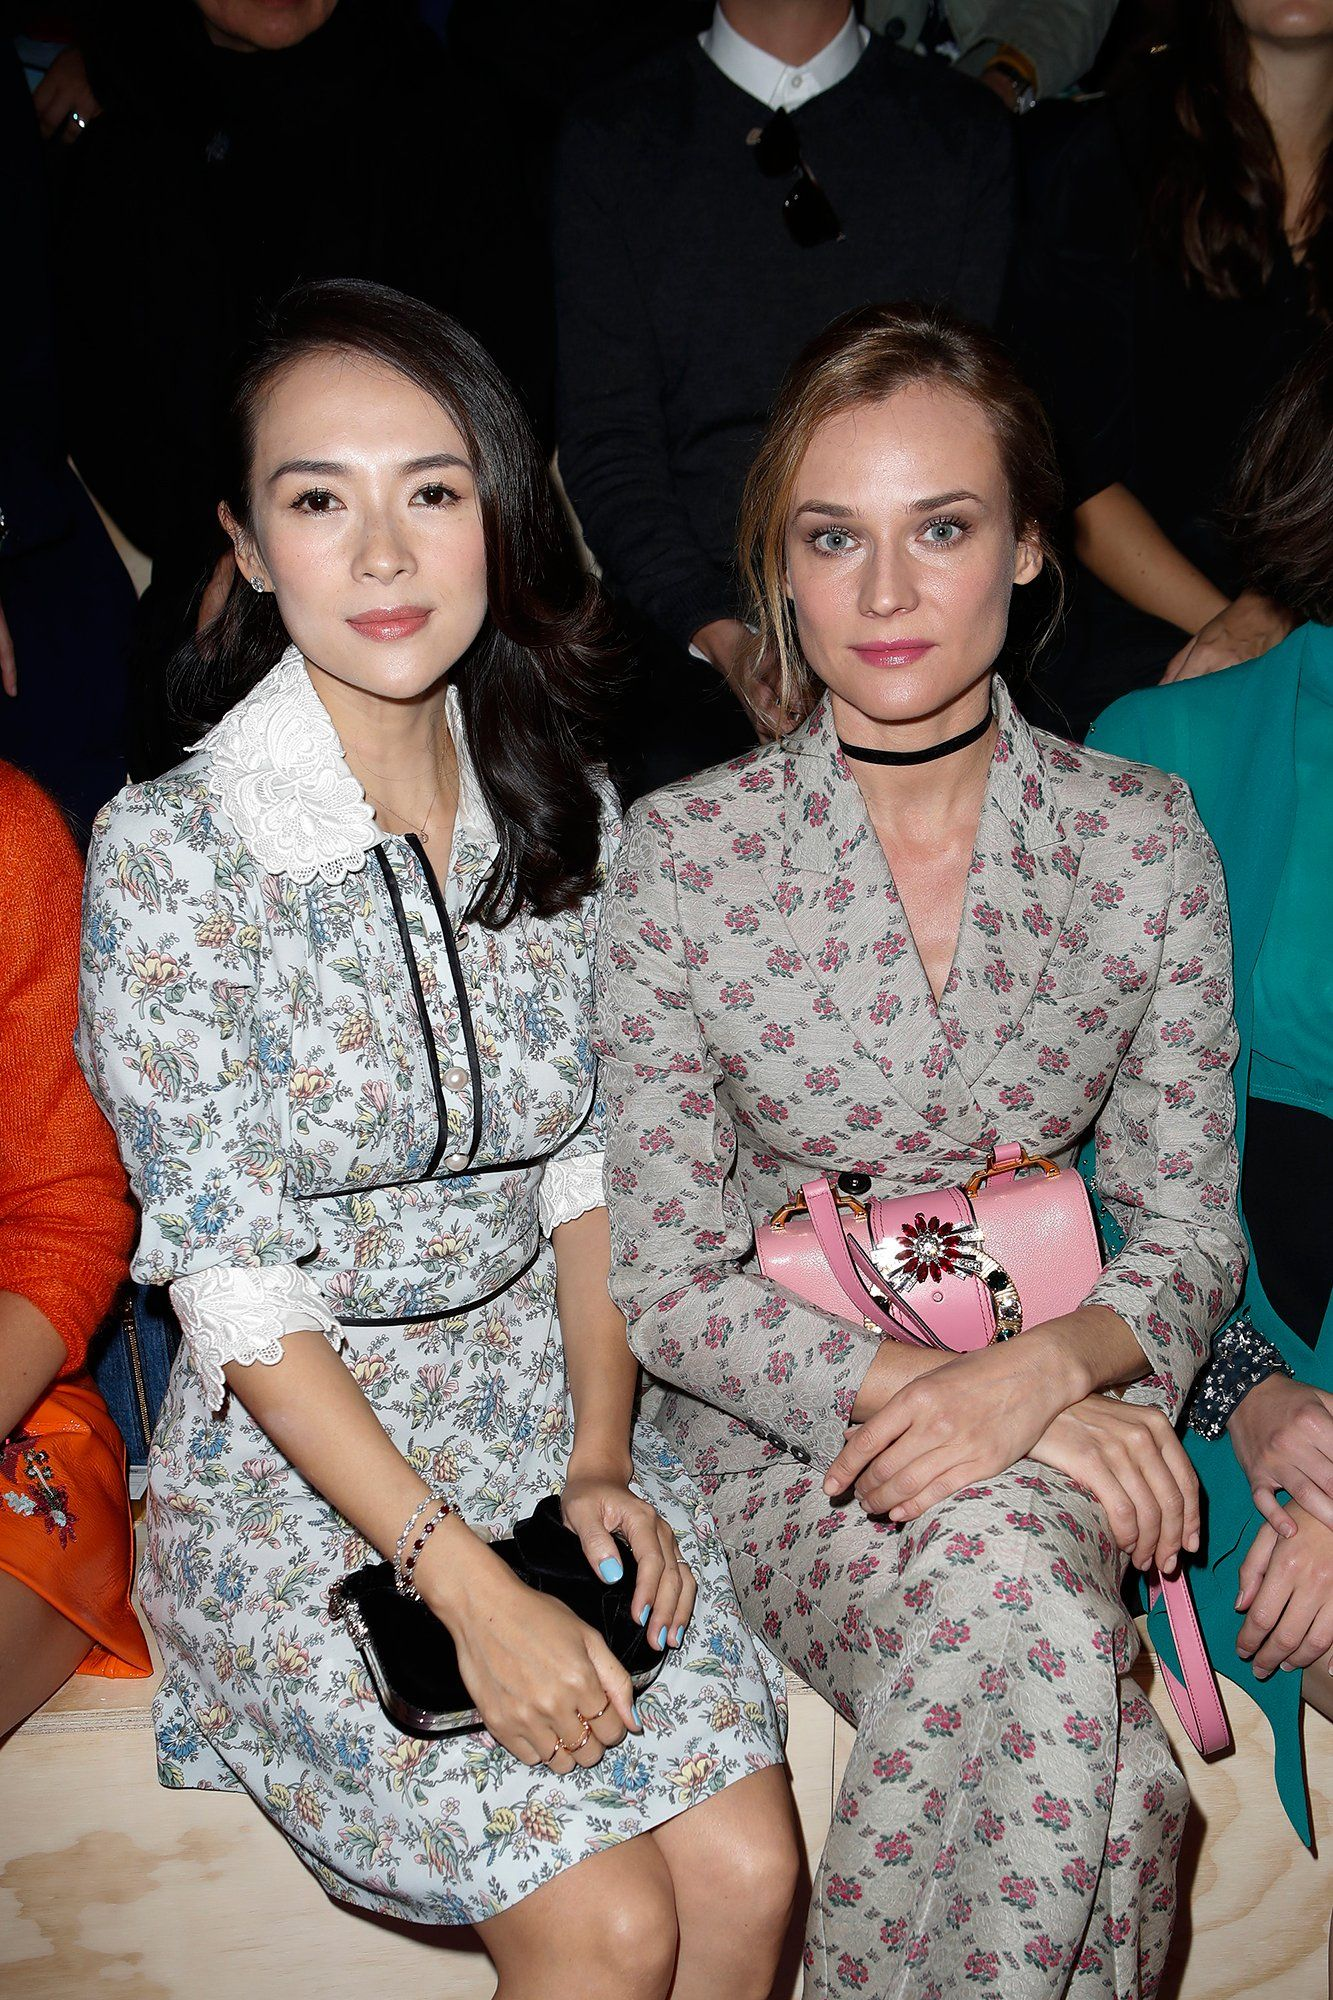 Front Row Style: Our Favorite A-List Moments of Fashion Week http://ift.tt/2cIprWn #Vogue #Fashion